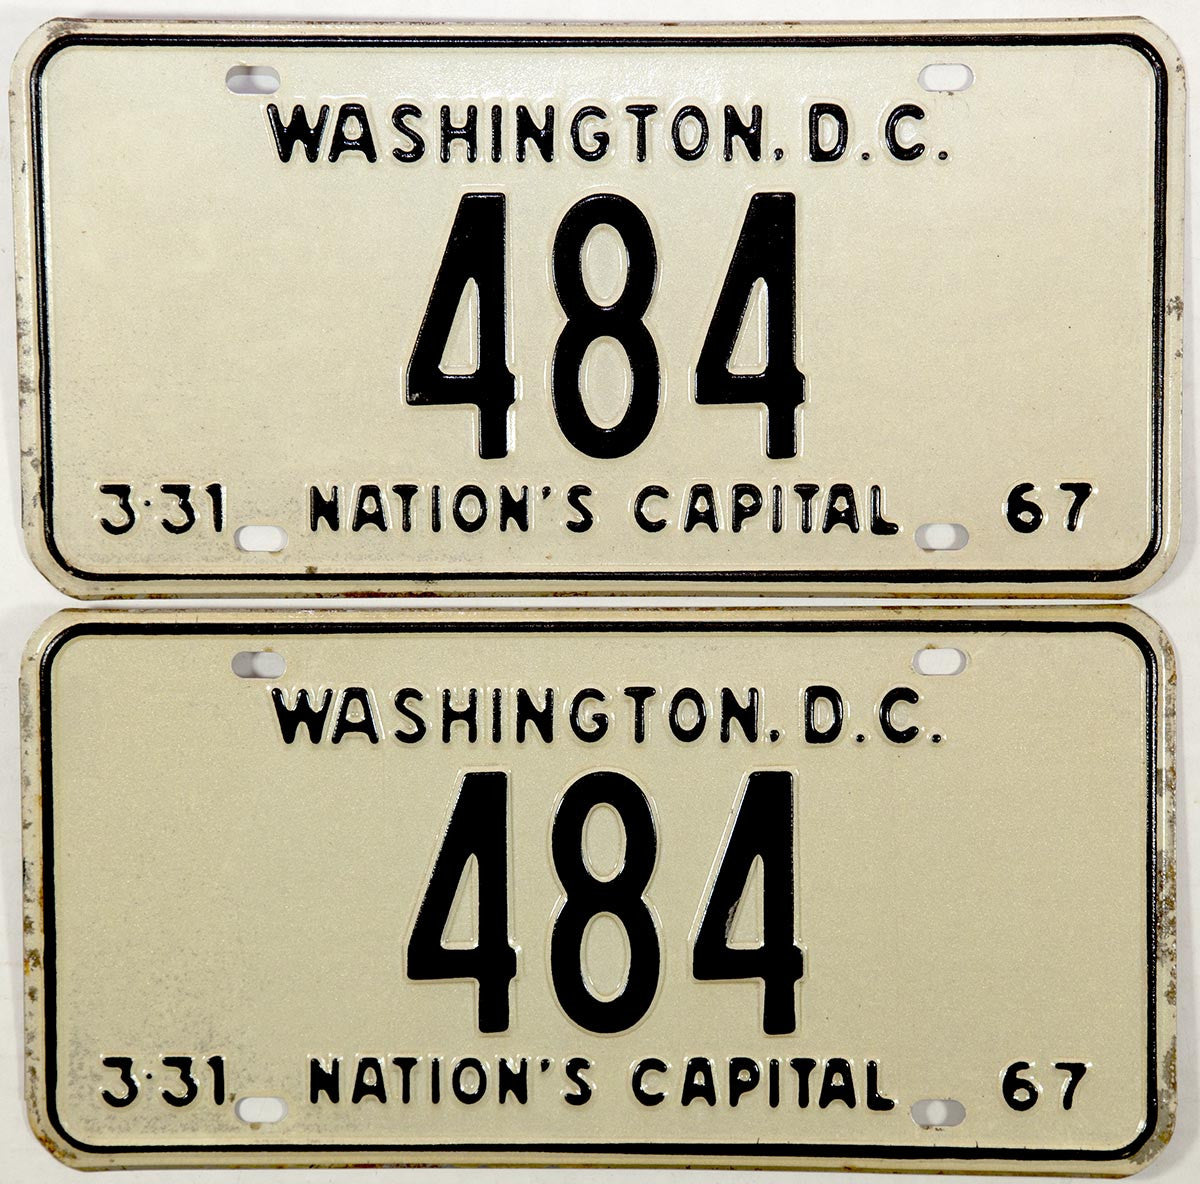 1967 District of Columbia License Plates